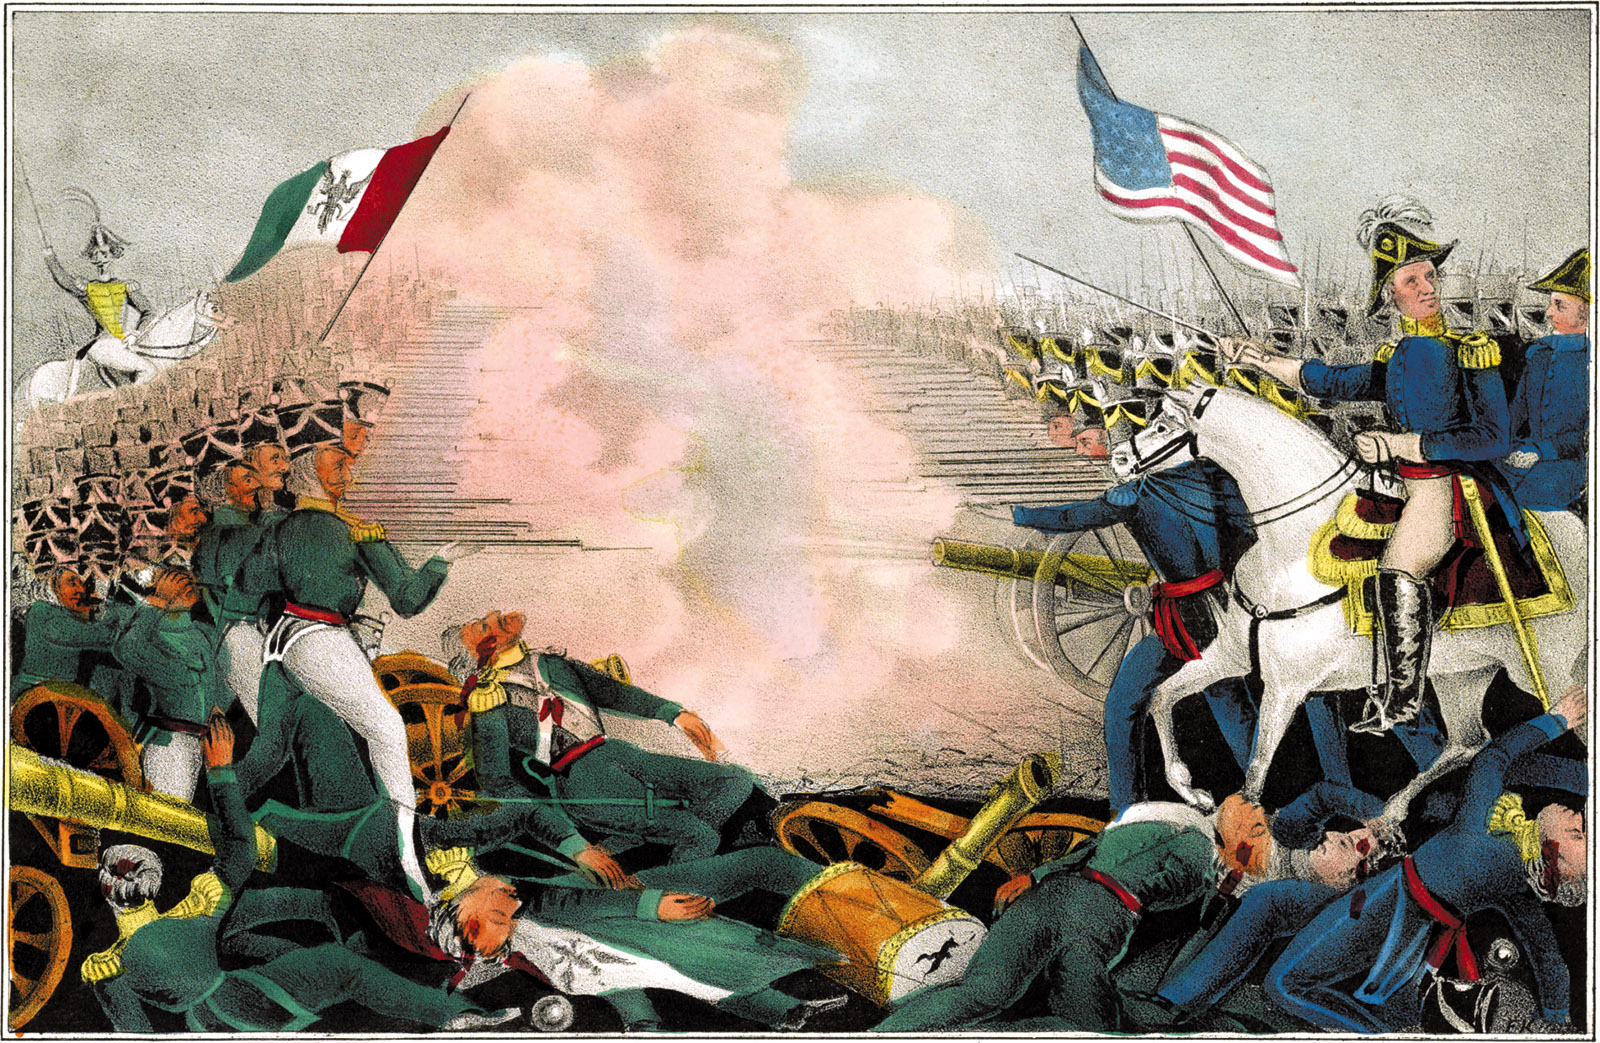 a short review of the mexican american war A quick review of everything you need to know about the mexican-american war for the apush exam want to download the powerpoint or fill-in-the-blanks guide for this video.